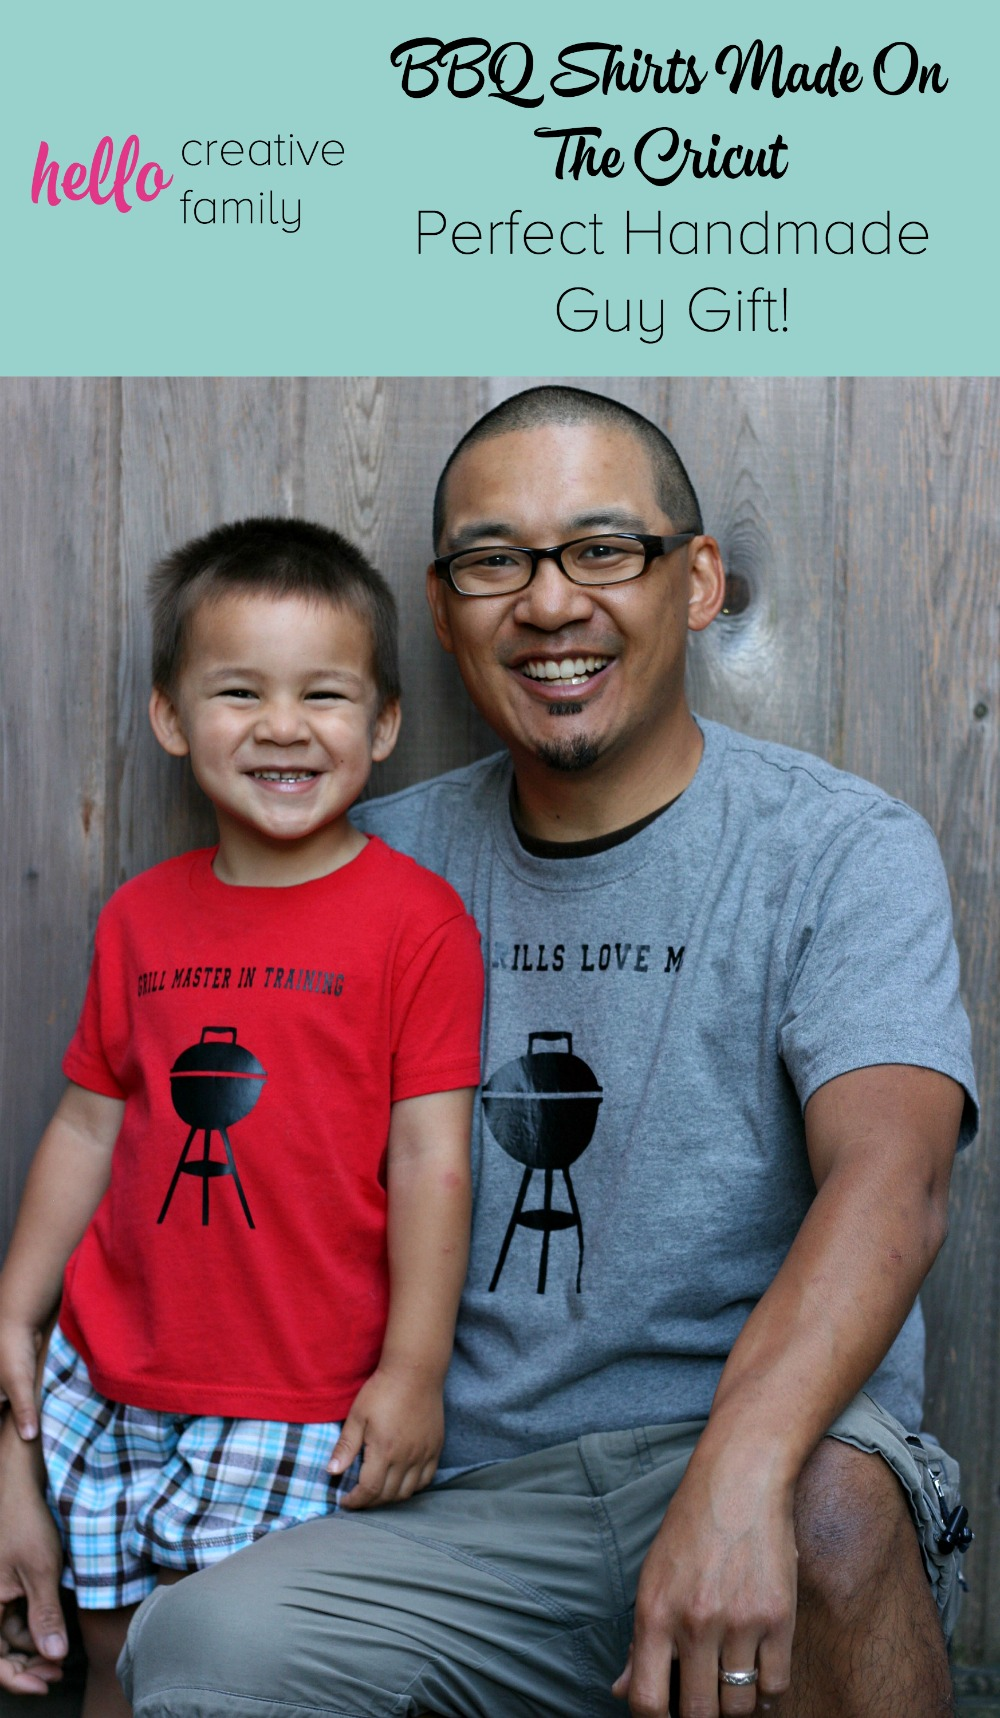 BBQ Shirts Made On The Cricut- Perfect Handmade Guy Gift